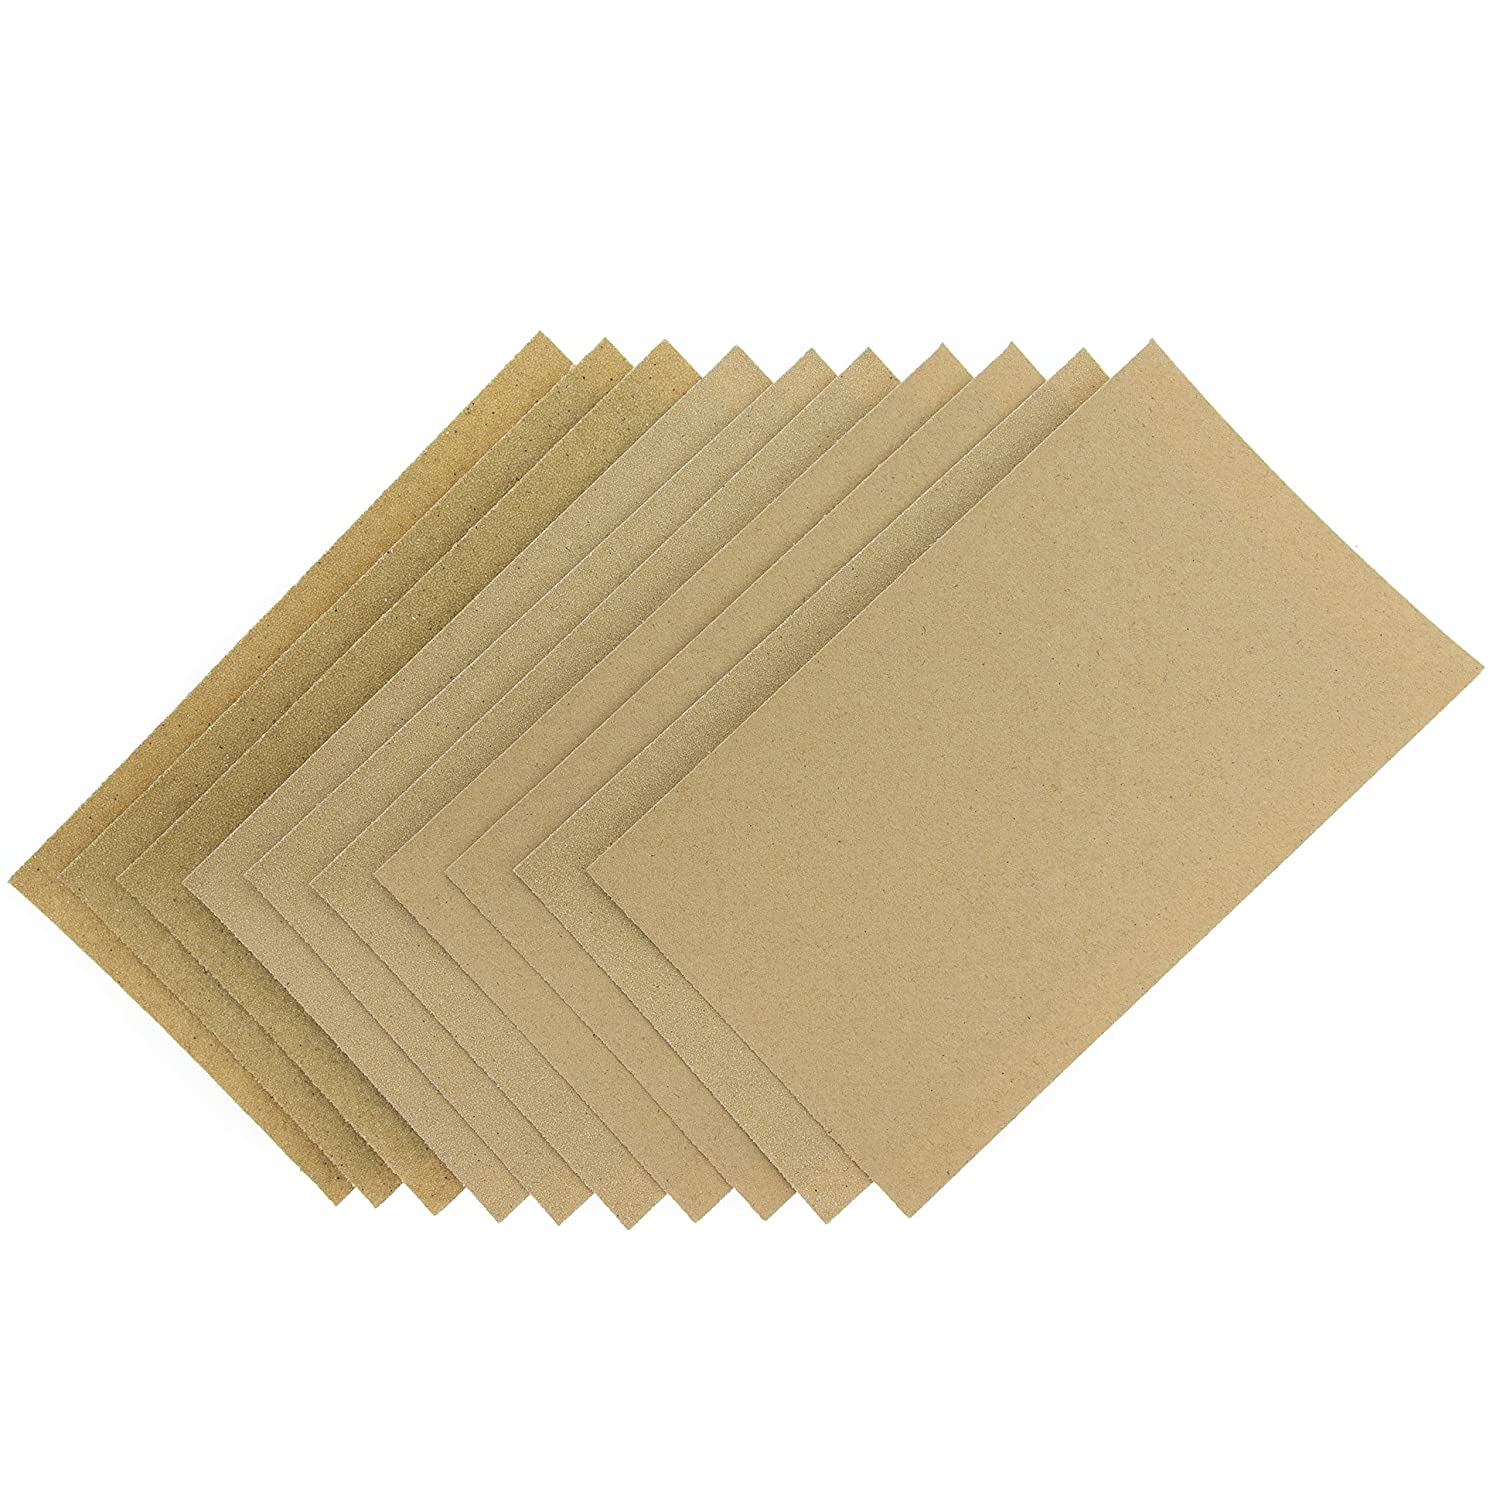 Coral Tools 74200 Abrasive Sandpaper Sheets 10 Pack incl Fine Medium and Coarse Grits, Brown Coral Tools Ltd